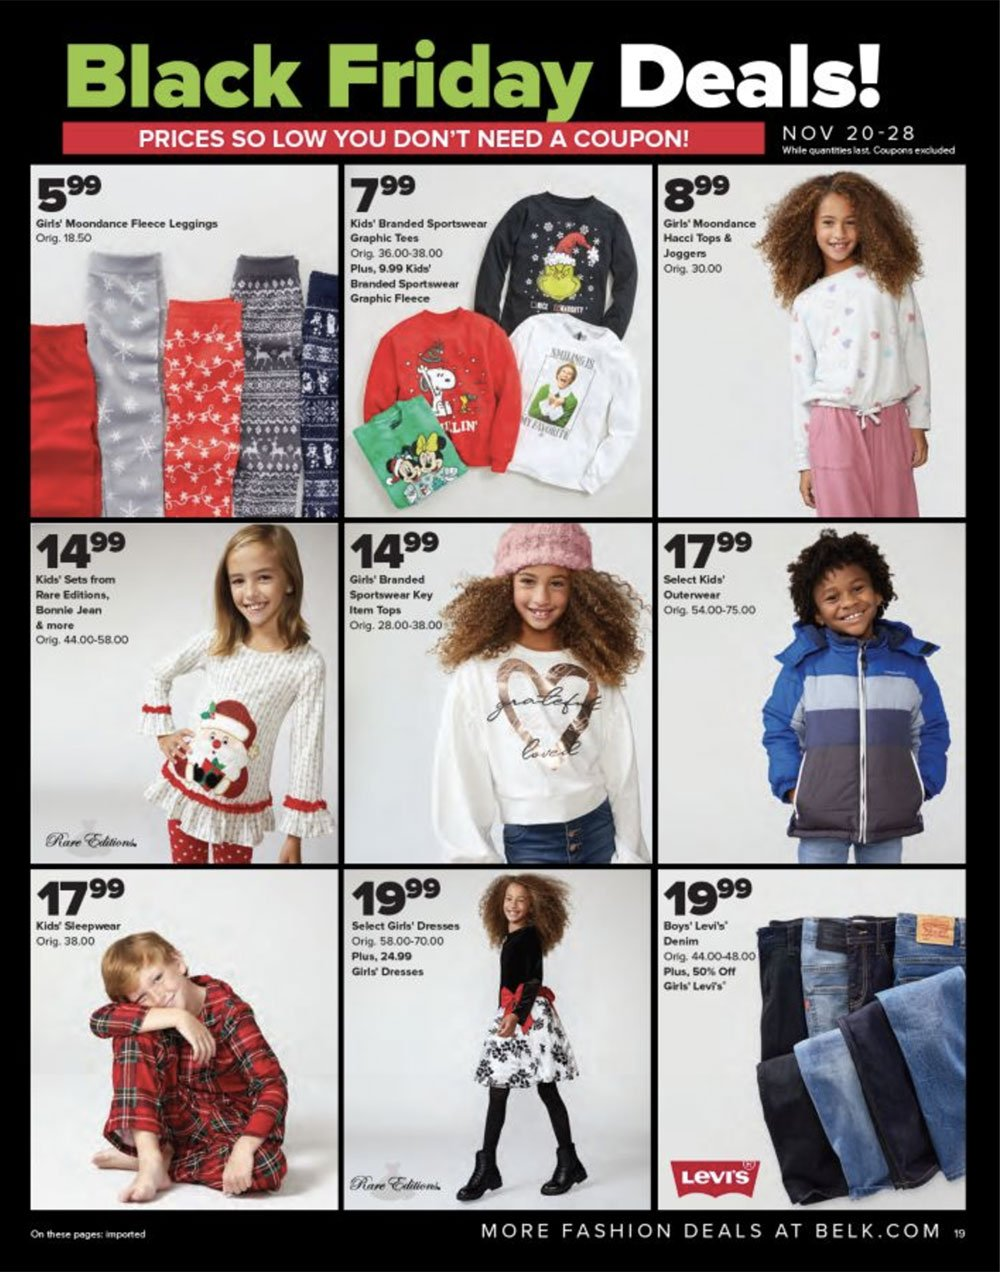 Belk Black Friday 2020 Page 19